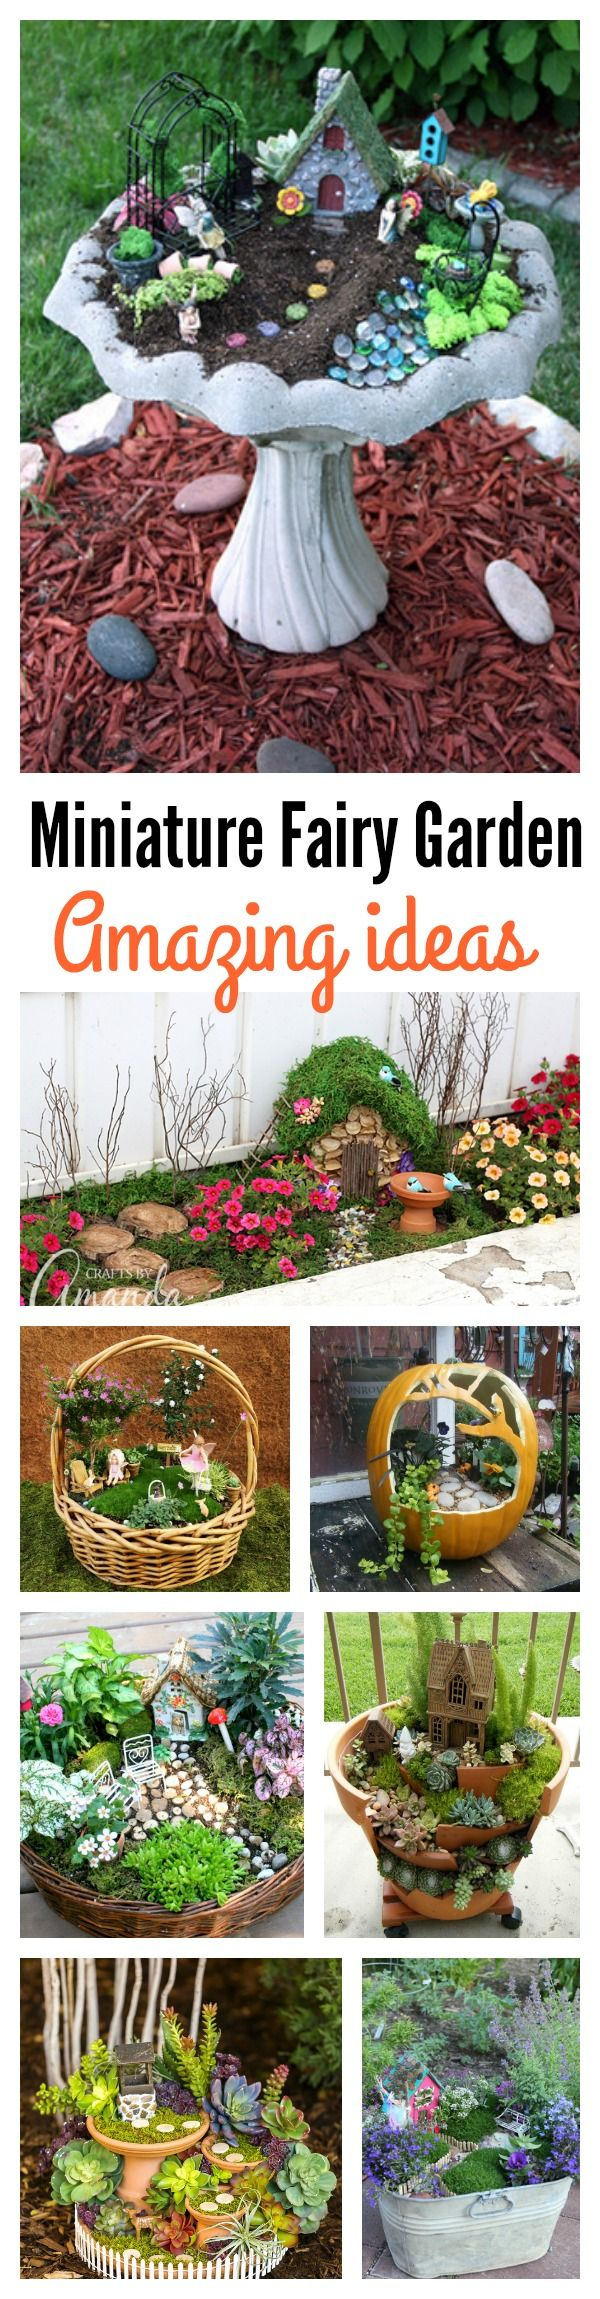 Miniature Fairy Garden Ideas amazing diy fairy garden decorating ideas miniature fairy garden 8 Amazing Miniature Fairy Garden Diy Ideas